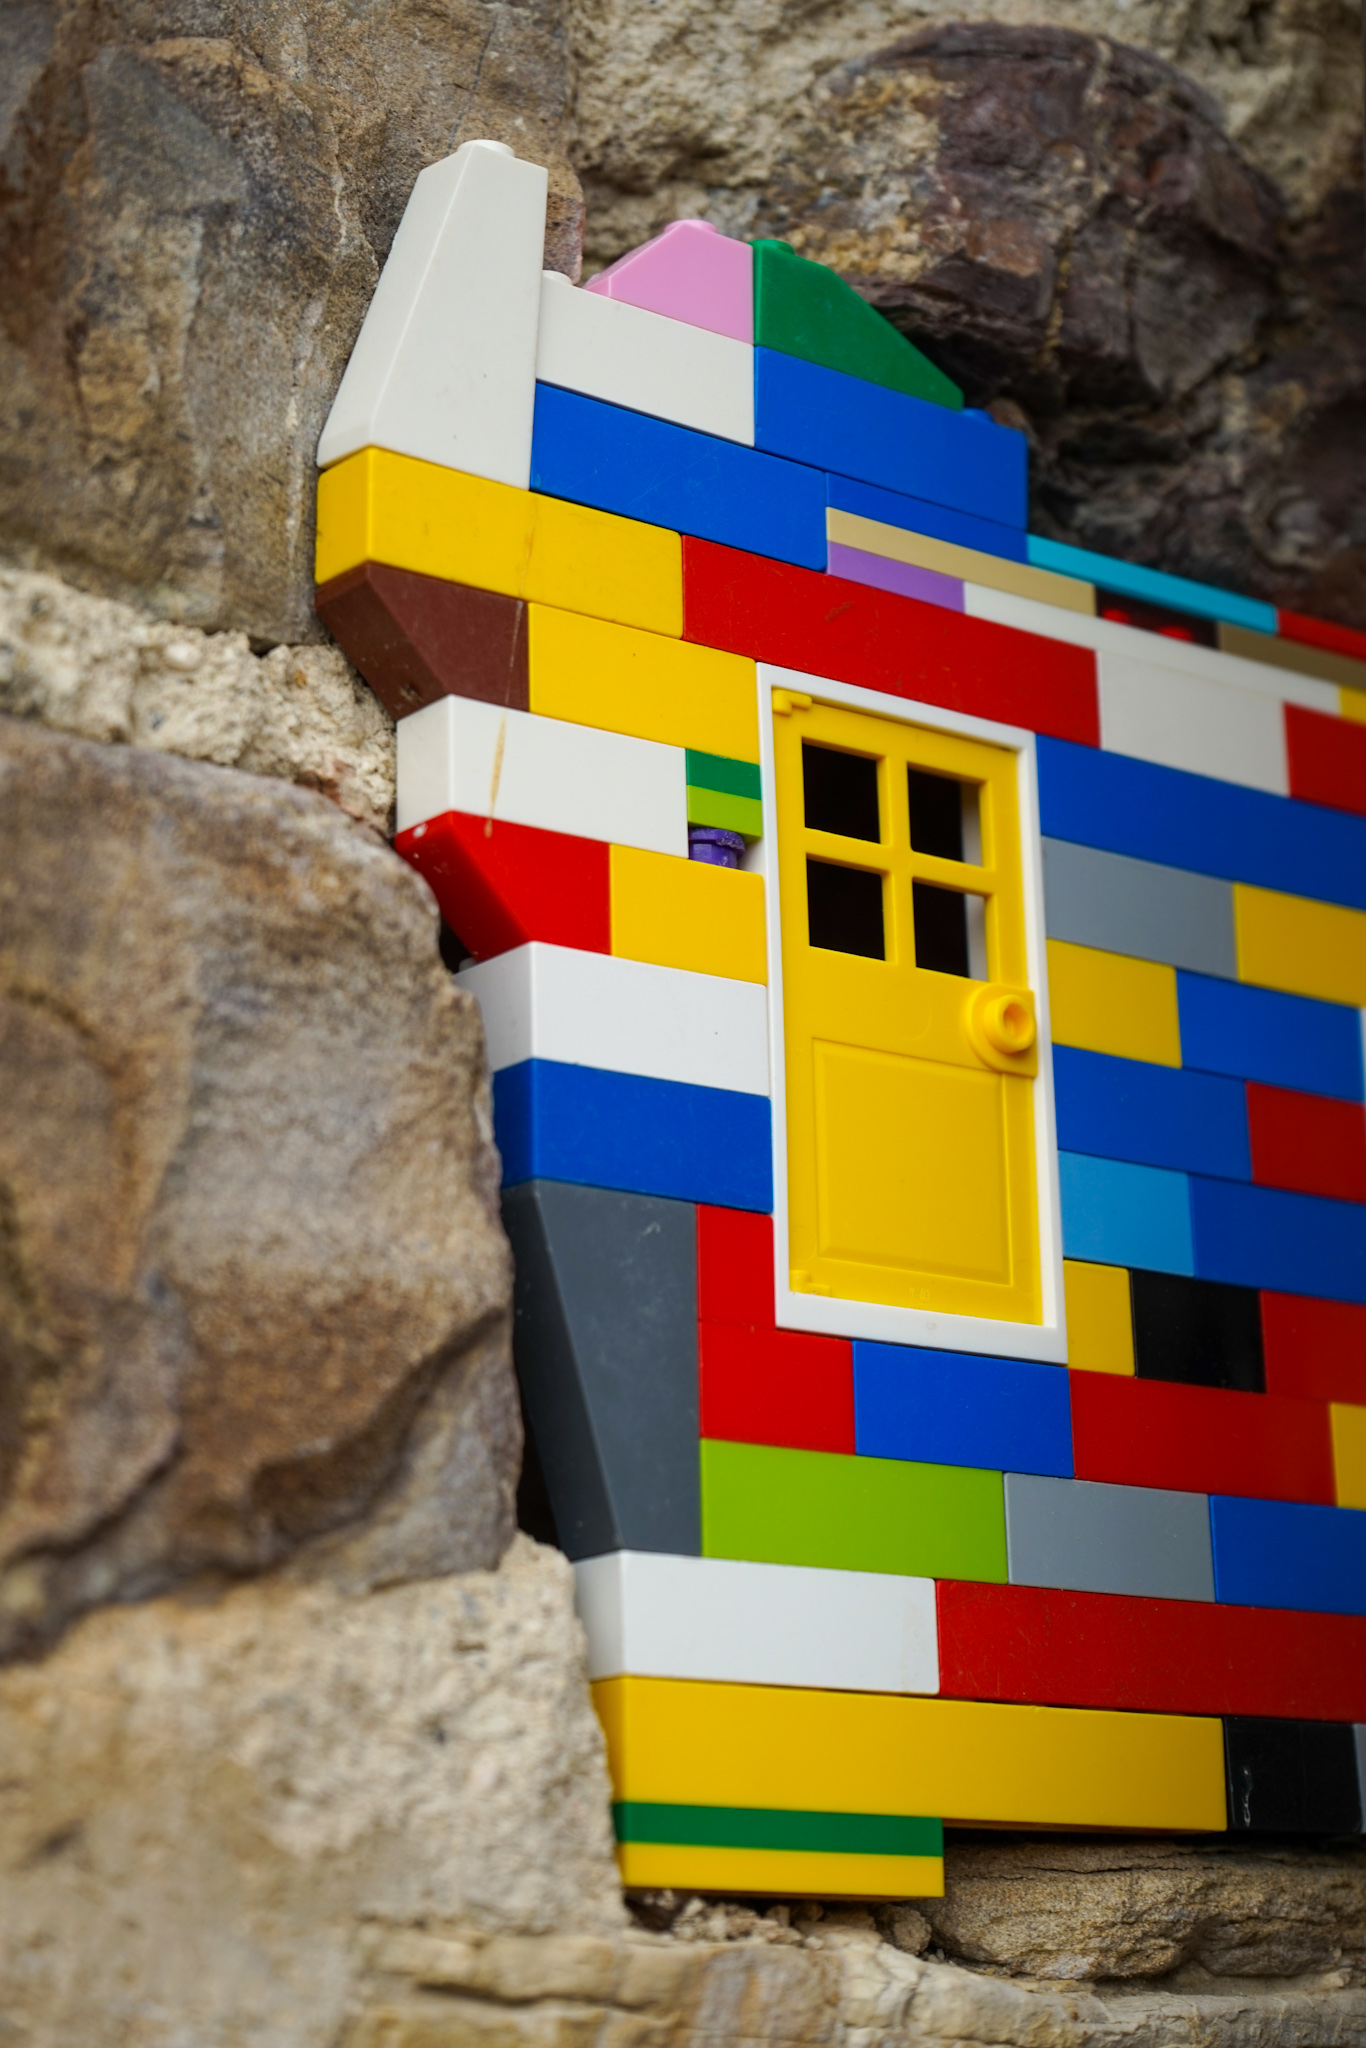 Street art with Lego at Civitacampomarano, in the Italian region of Molise